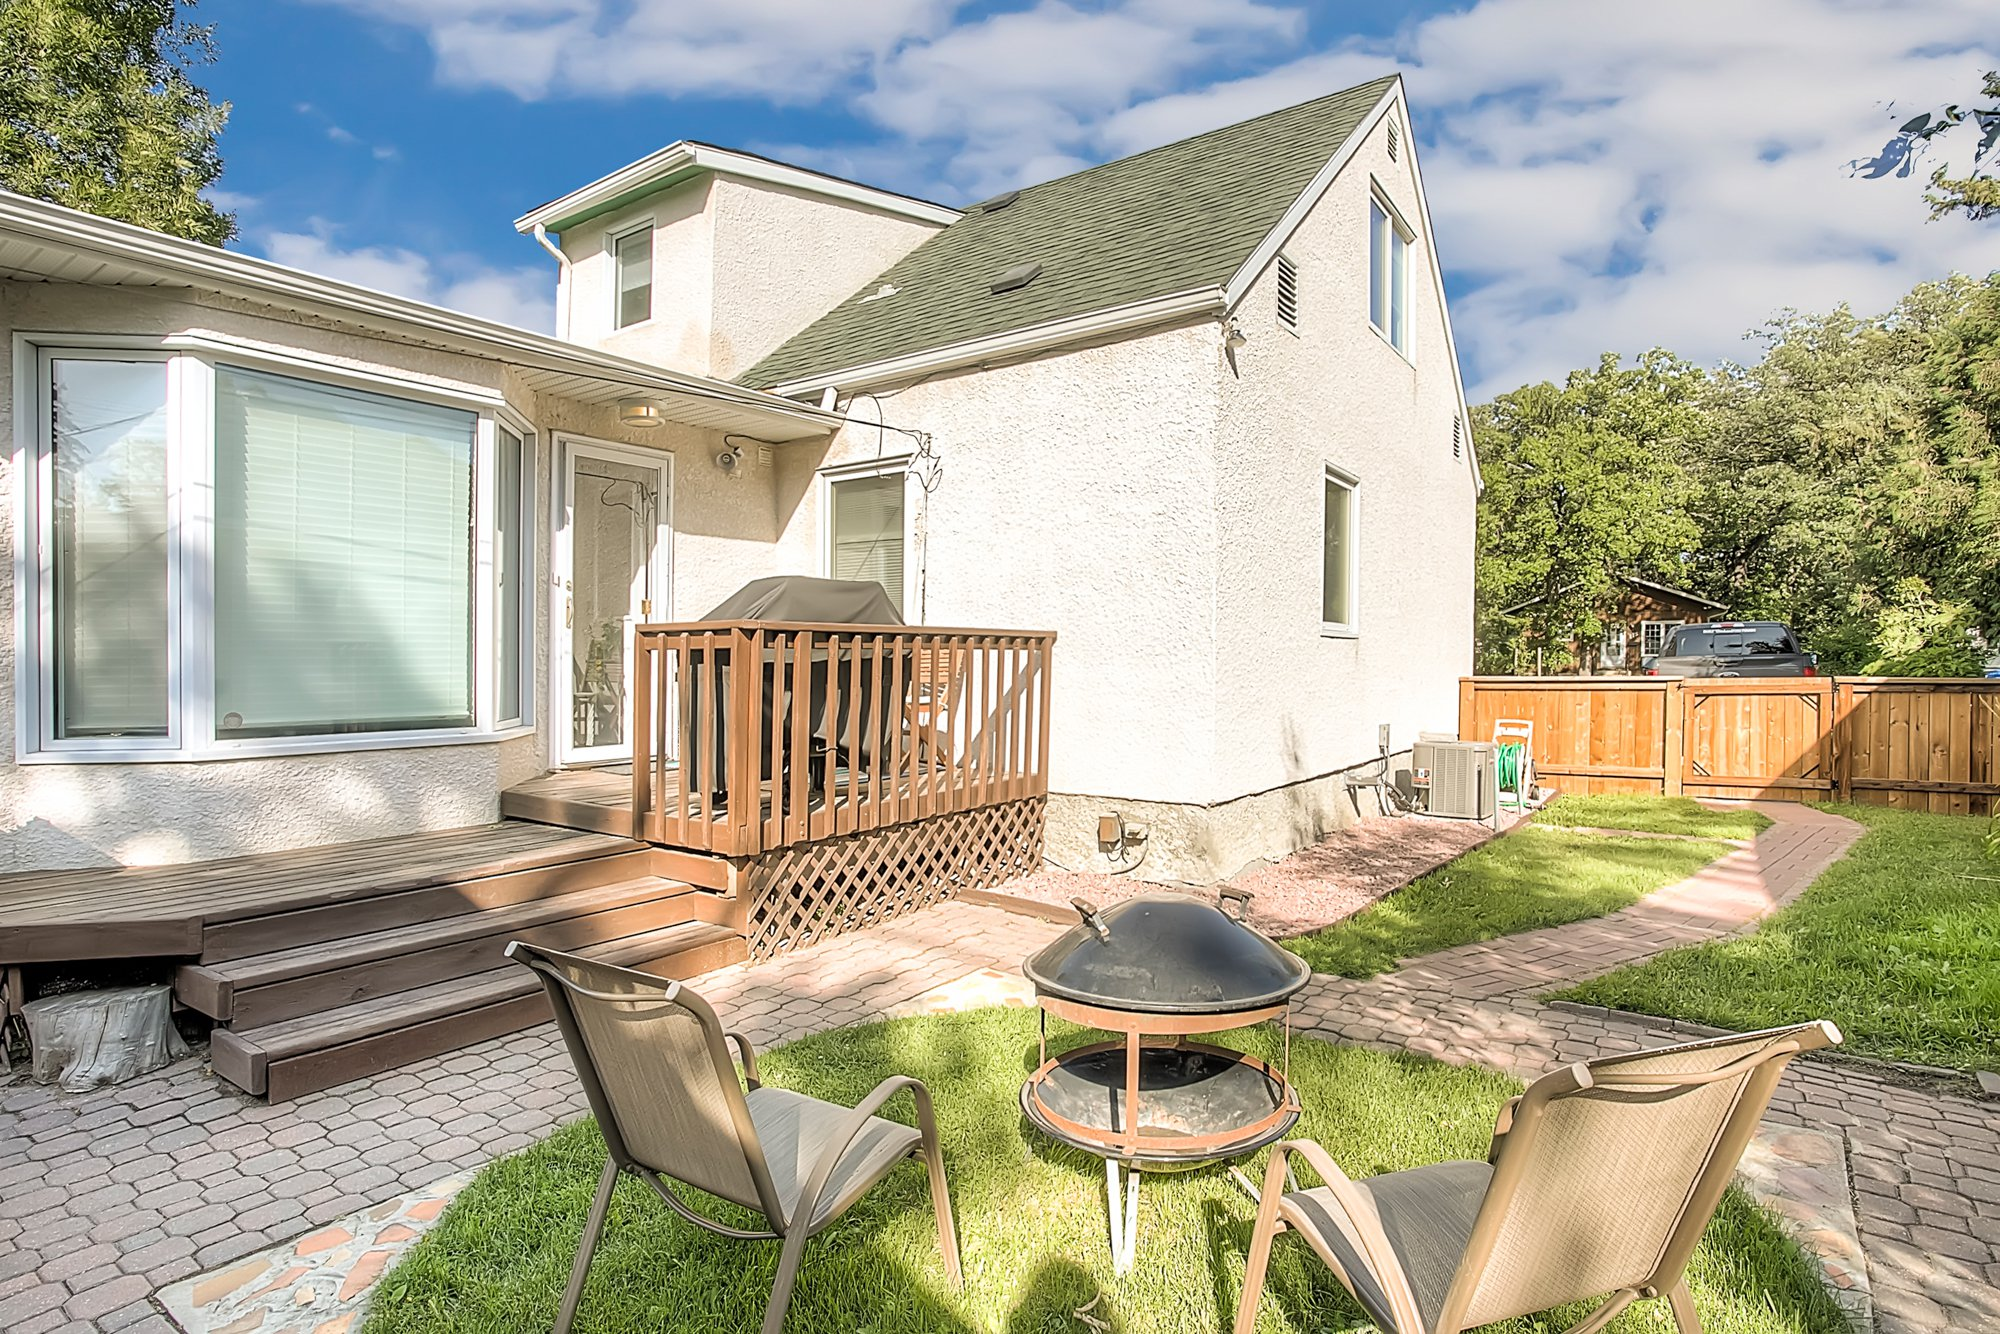 Main Photo: 116 Sunnyside Boulevard in Winnipeg: Woodhaven Single Family Detached for sale (5F)  : MLS®# 1925320